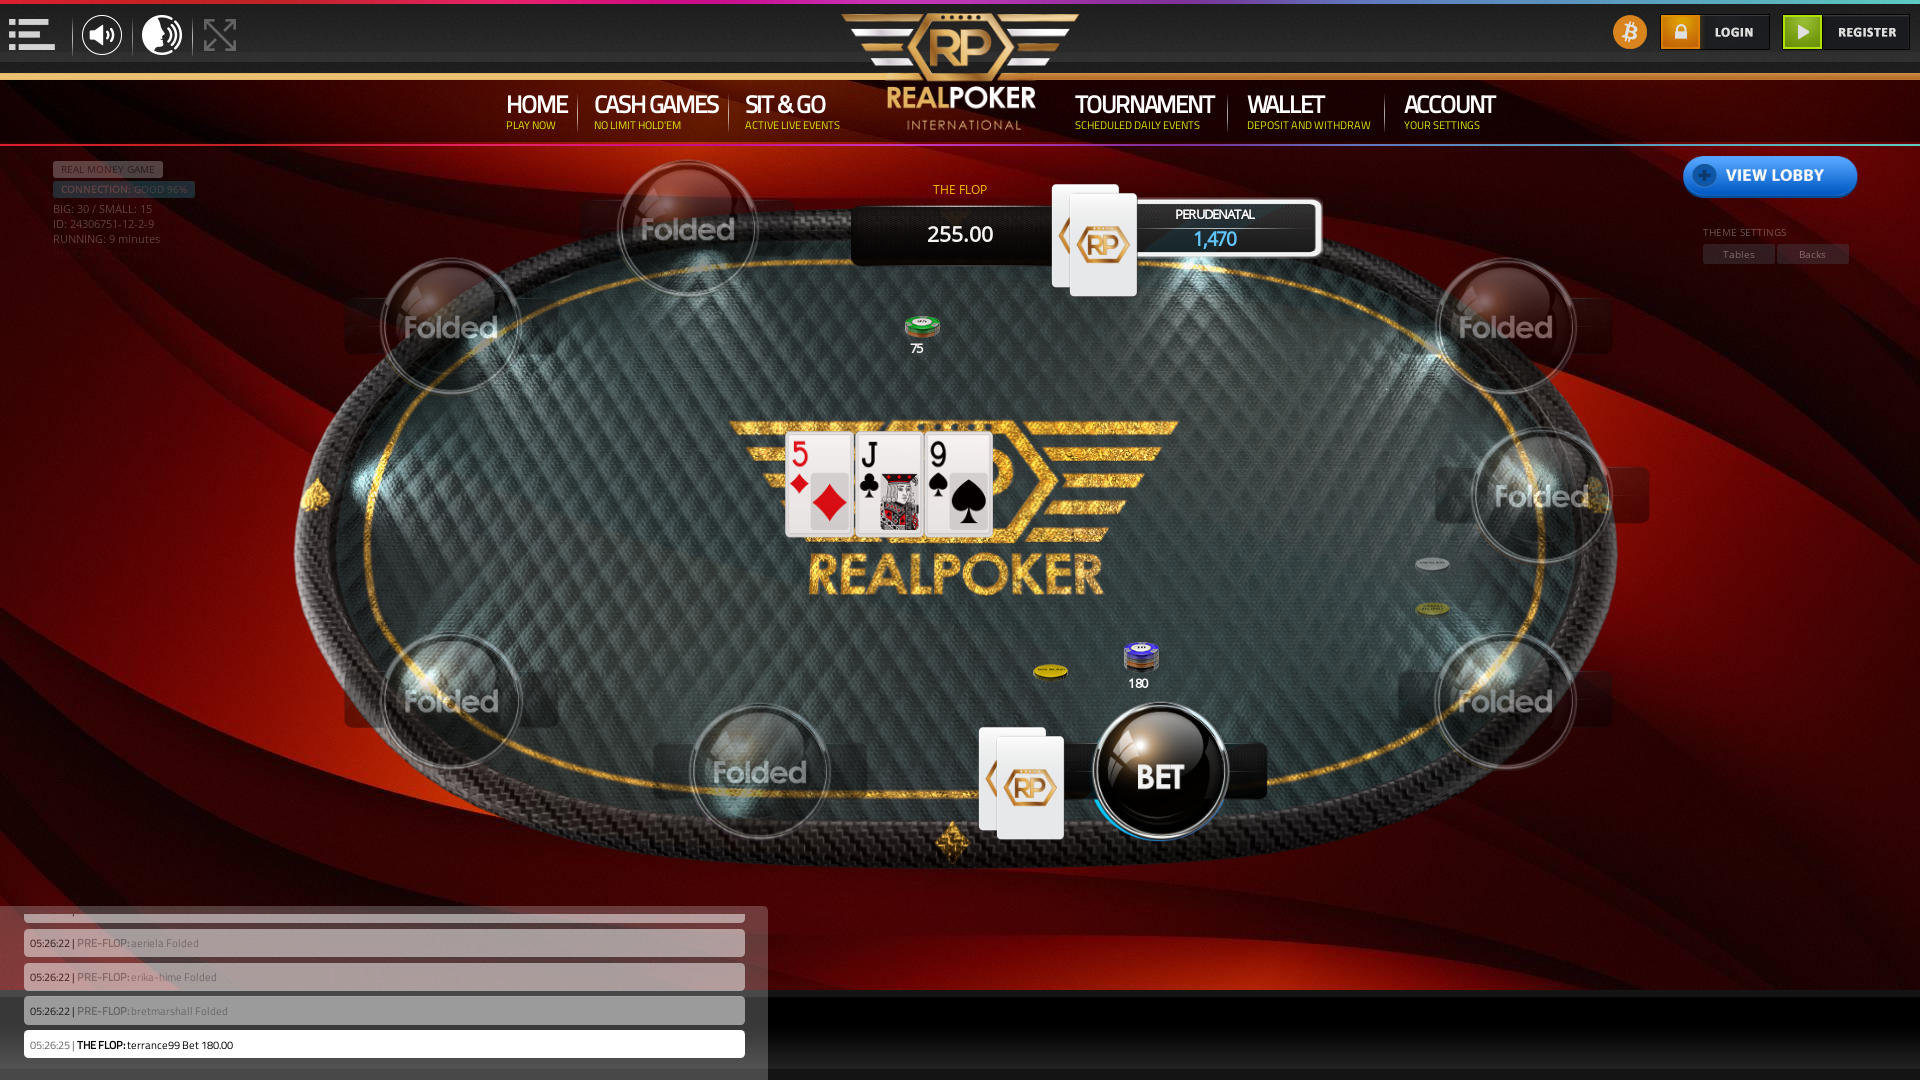 online poker on a 10 player table in the 9th minute match up